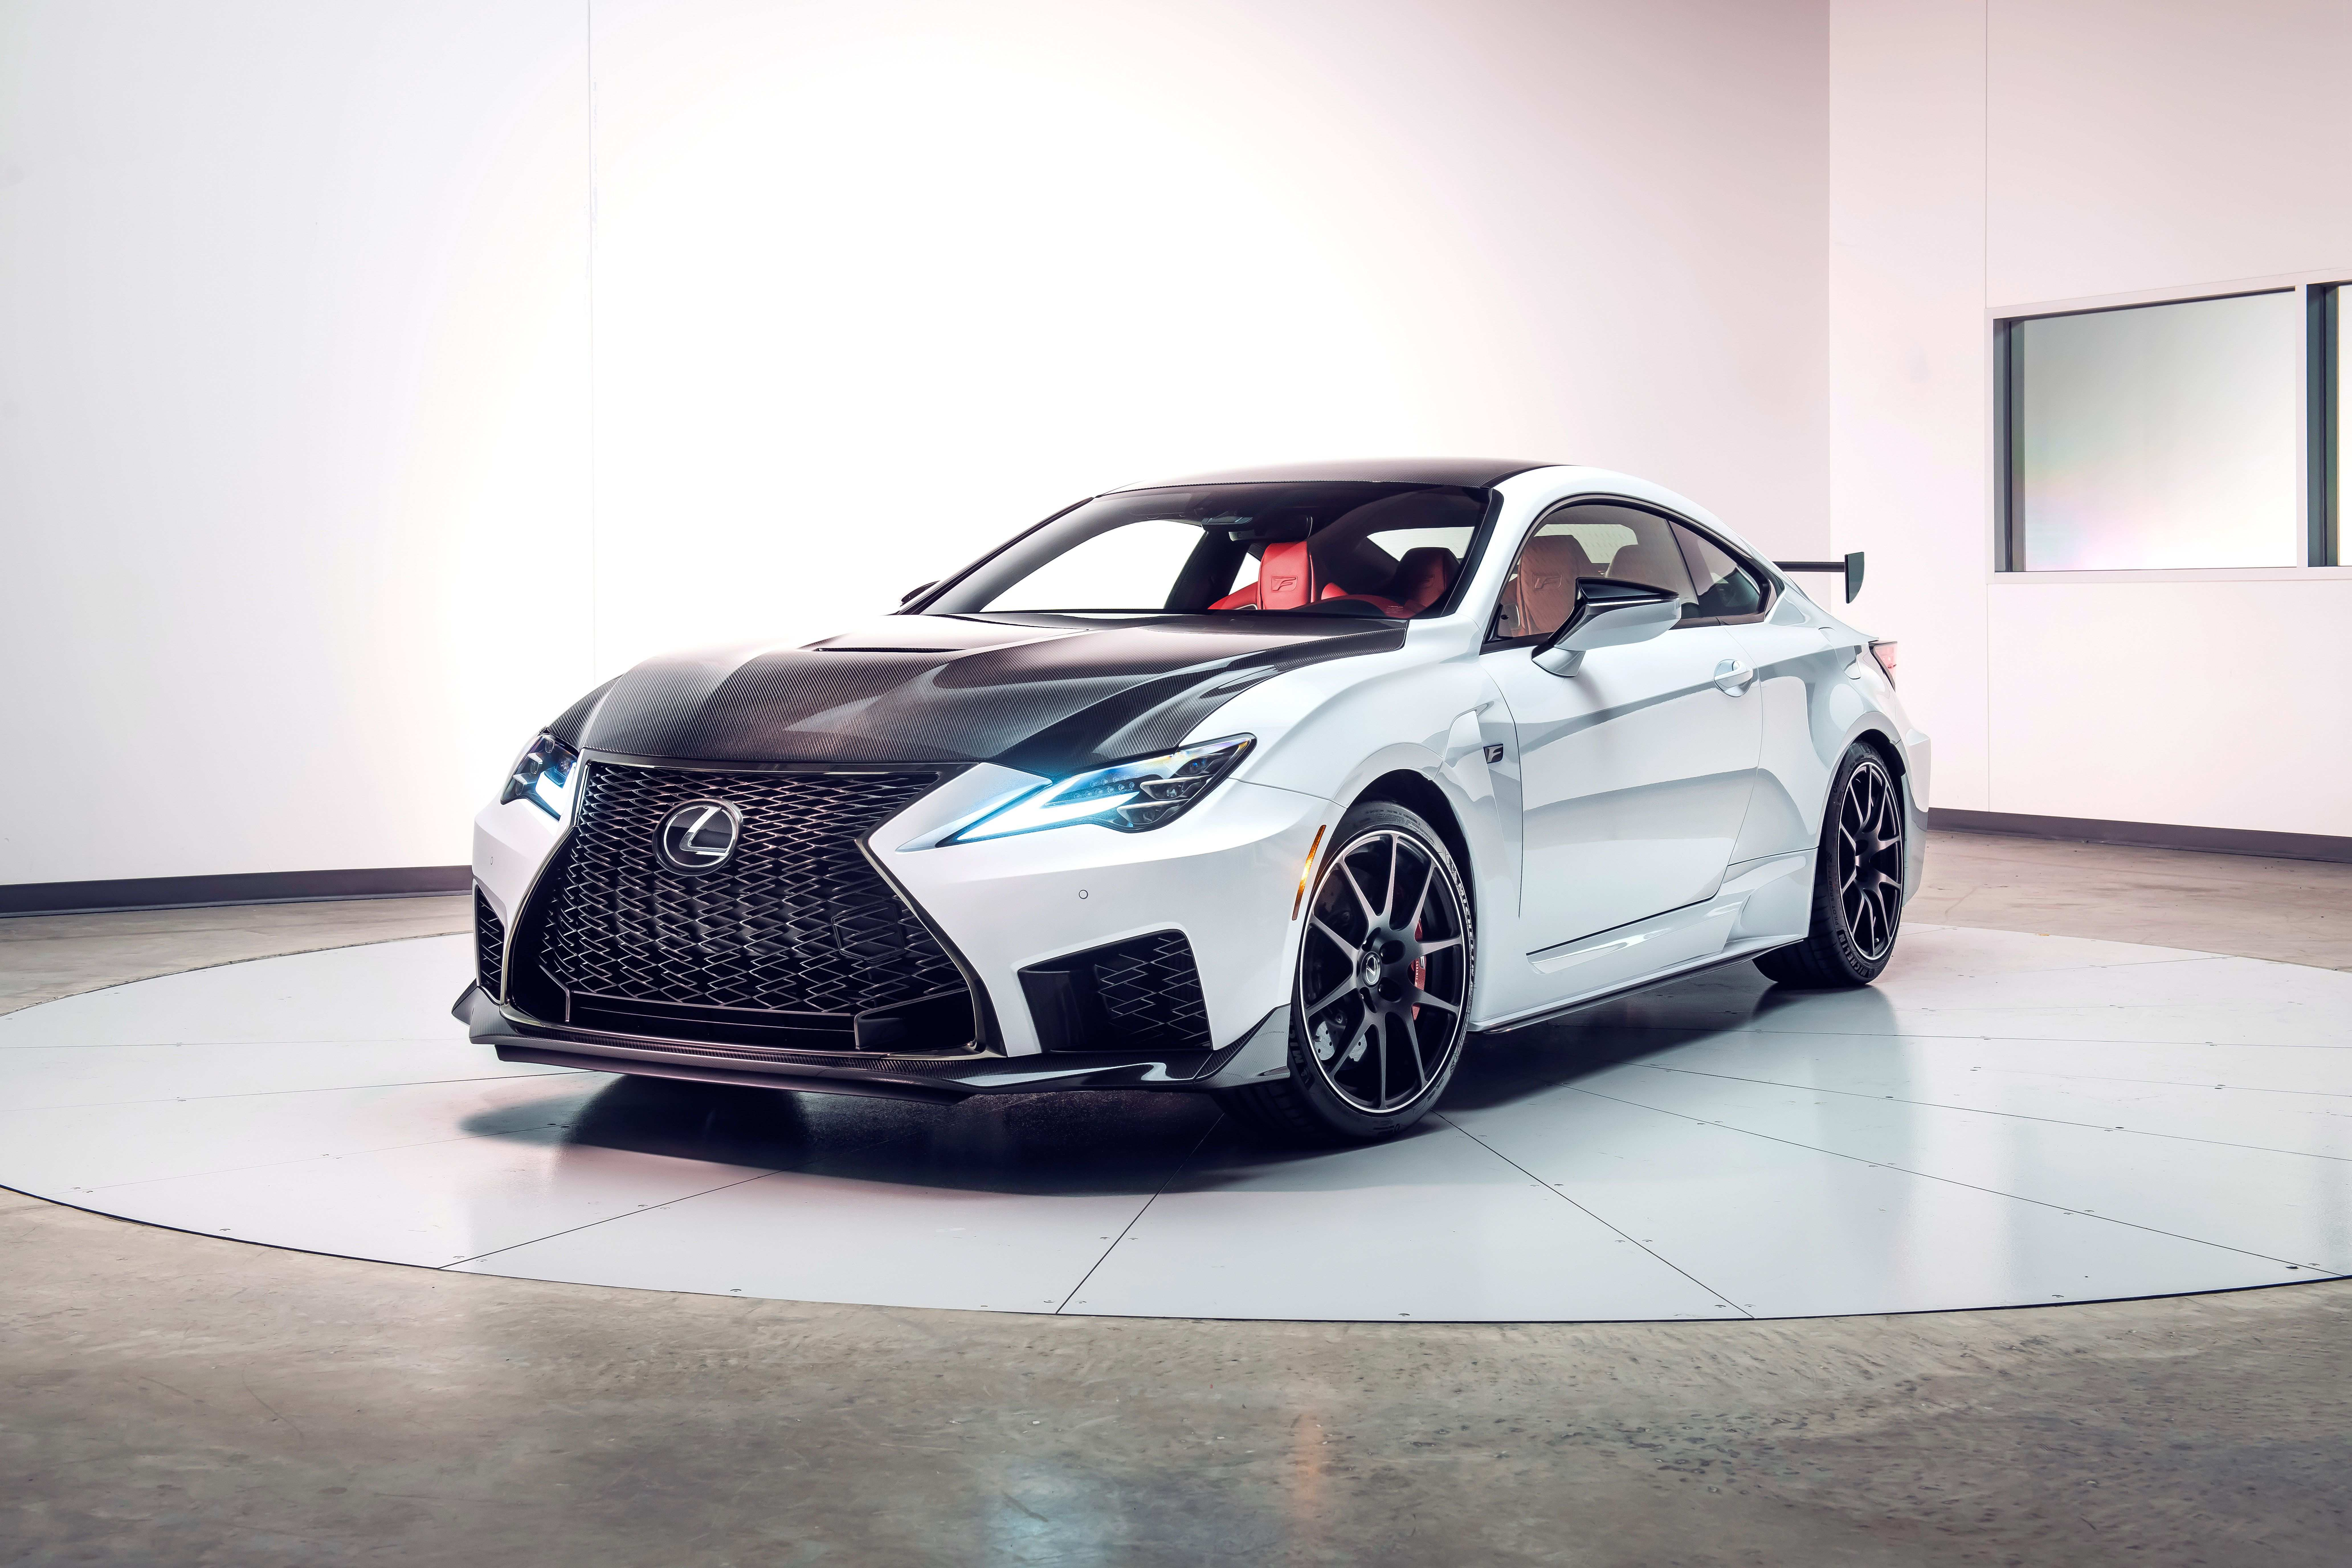 29 New 2020 Lexus Rcf Images for 2020 Lexus Rcf